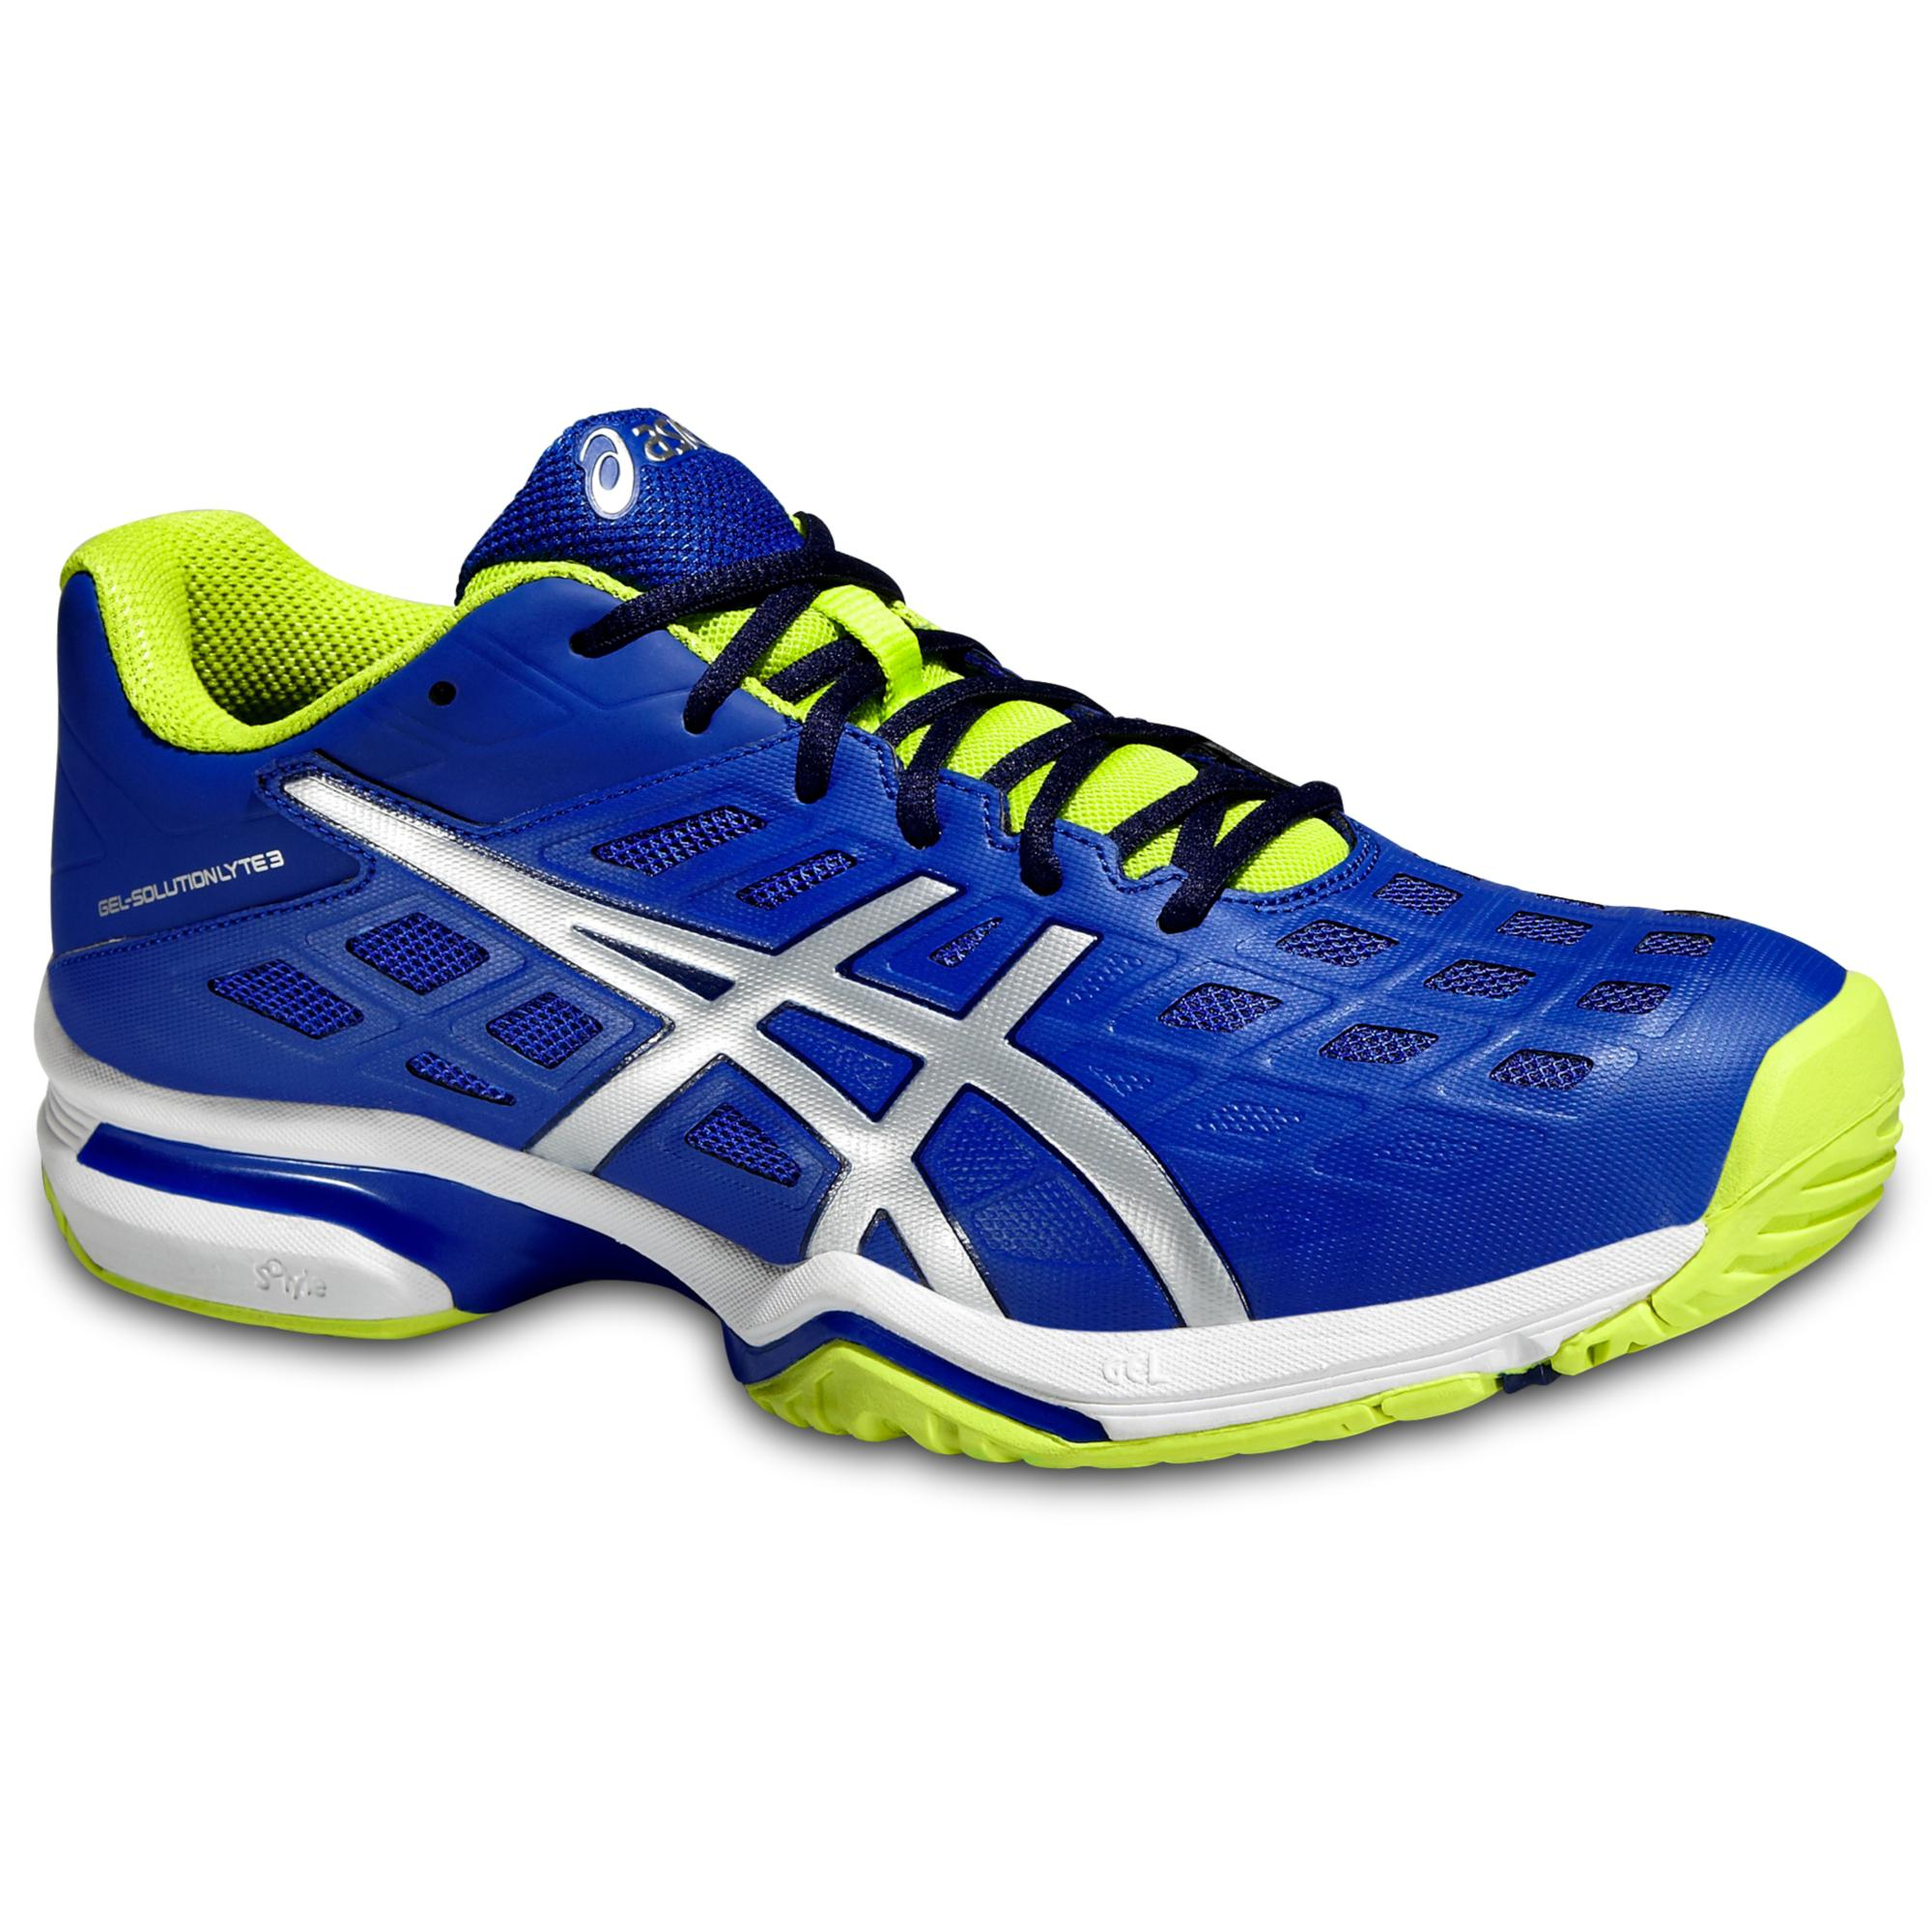 Asics Mens GEL-Solution Lyte 3 Tennis Shoes - Blue/Silver/Lime